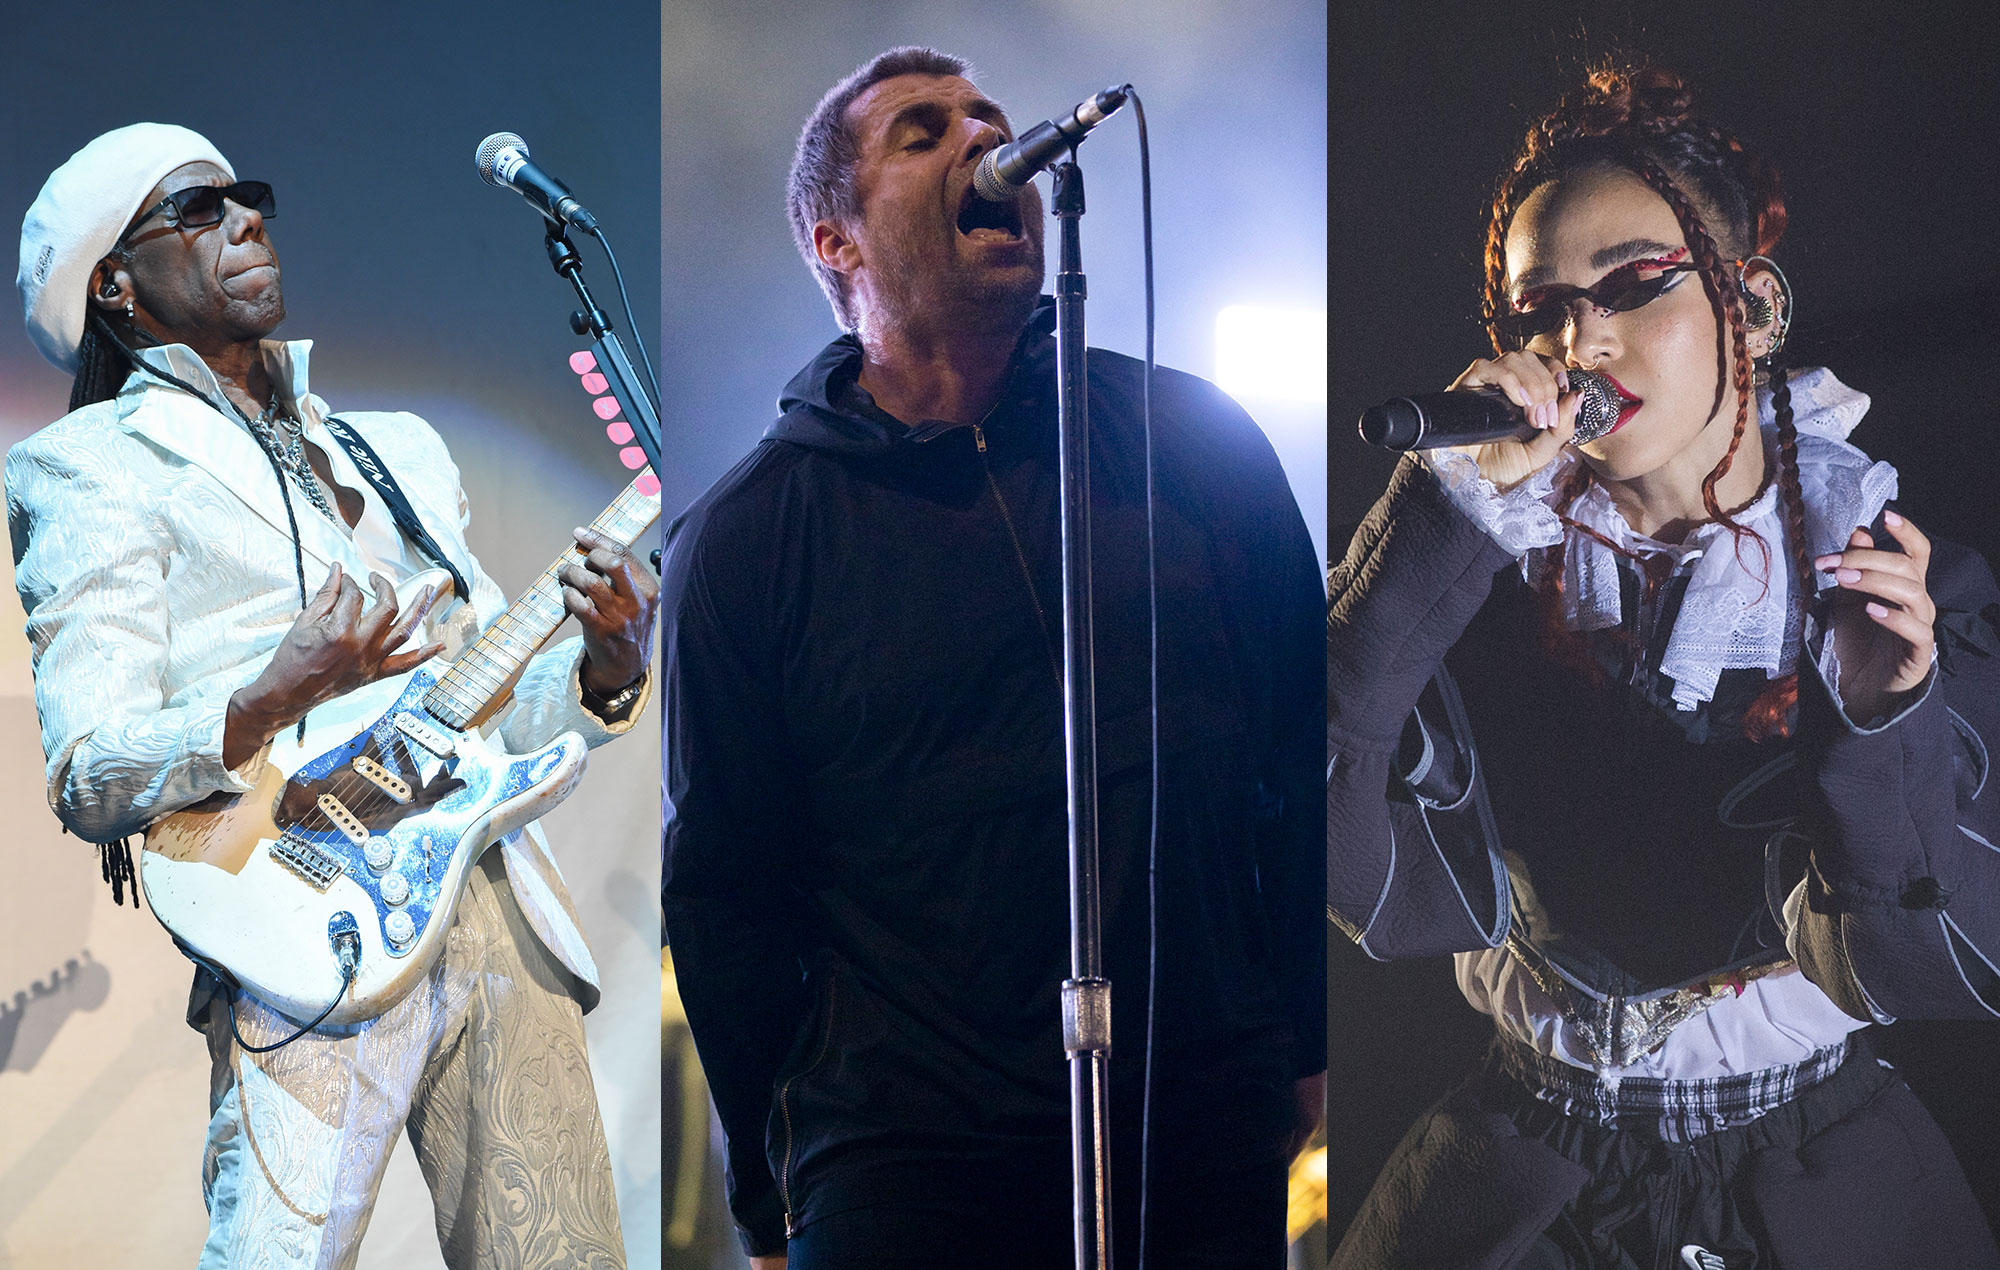 Nile Rodgers, Liam Gallagher, FKA Twigs and more donate signed guitars and memorabilia to auction to help struggling workers